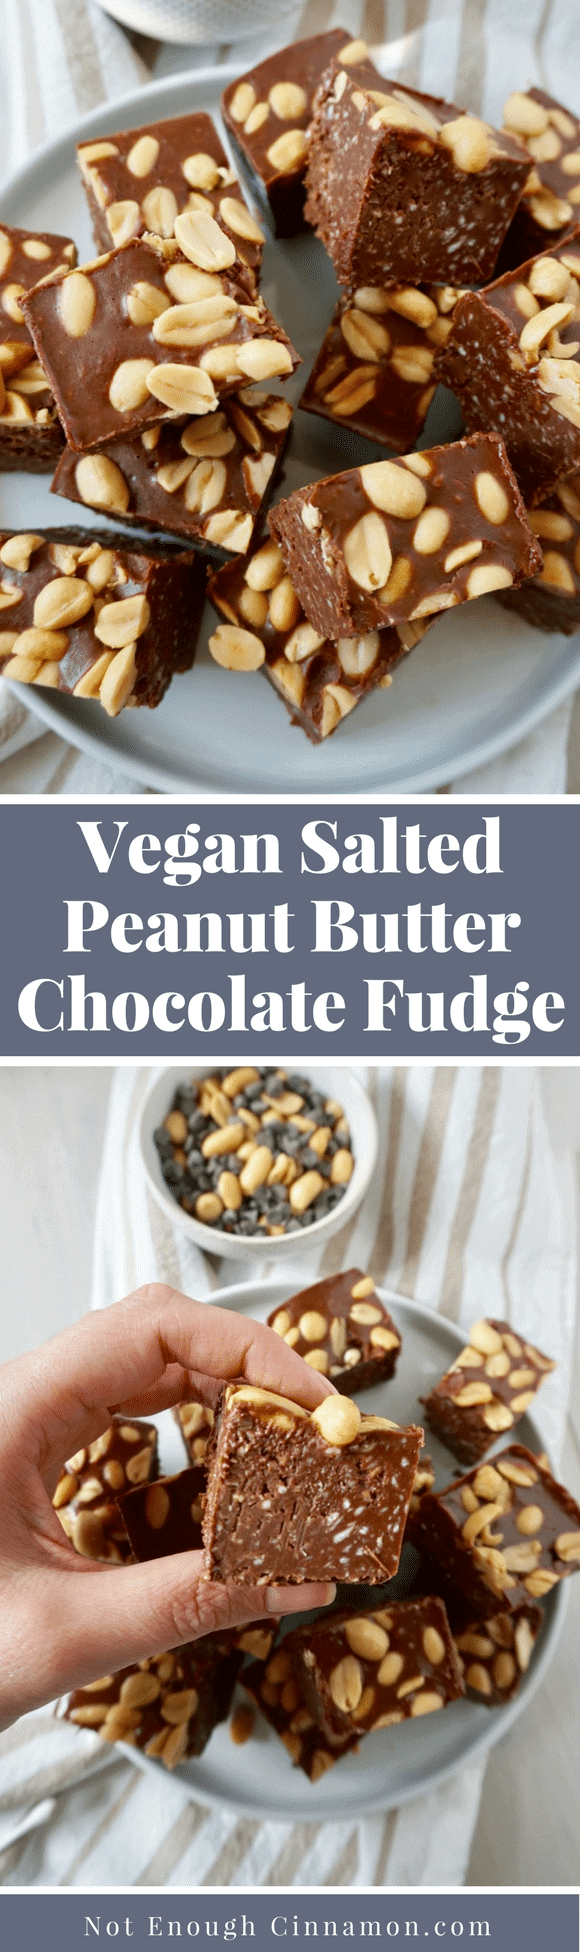 Vegan Salted Peanut Butter Chocolate Fudge / An easy fudge recipe that's not only made with healthy wholesome ingredients but super delicious too! Perfect as a holiday gift or as a snack. They are vegan and naturally gluten-free. #glutenfree, #vegansweets, #vegandesserts, #veganfudge, #fudgerecipes